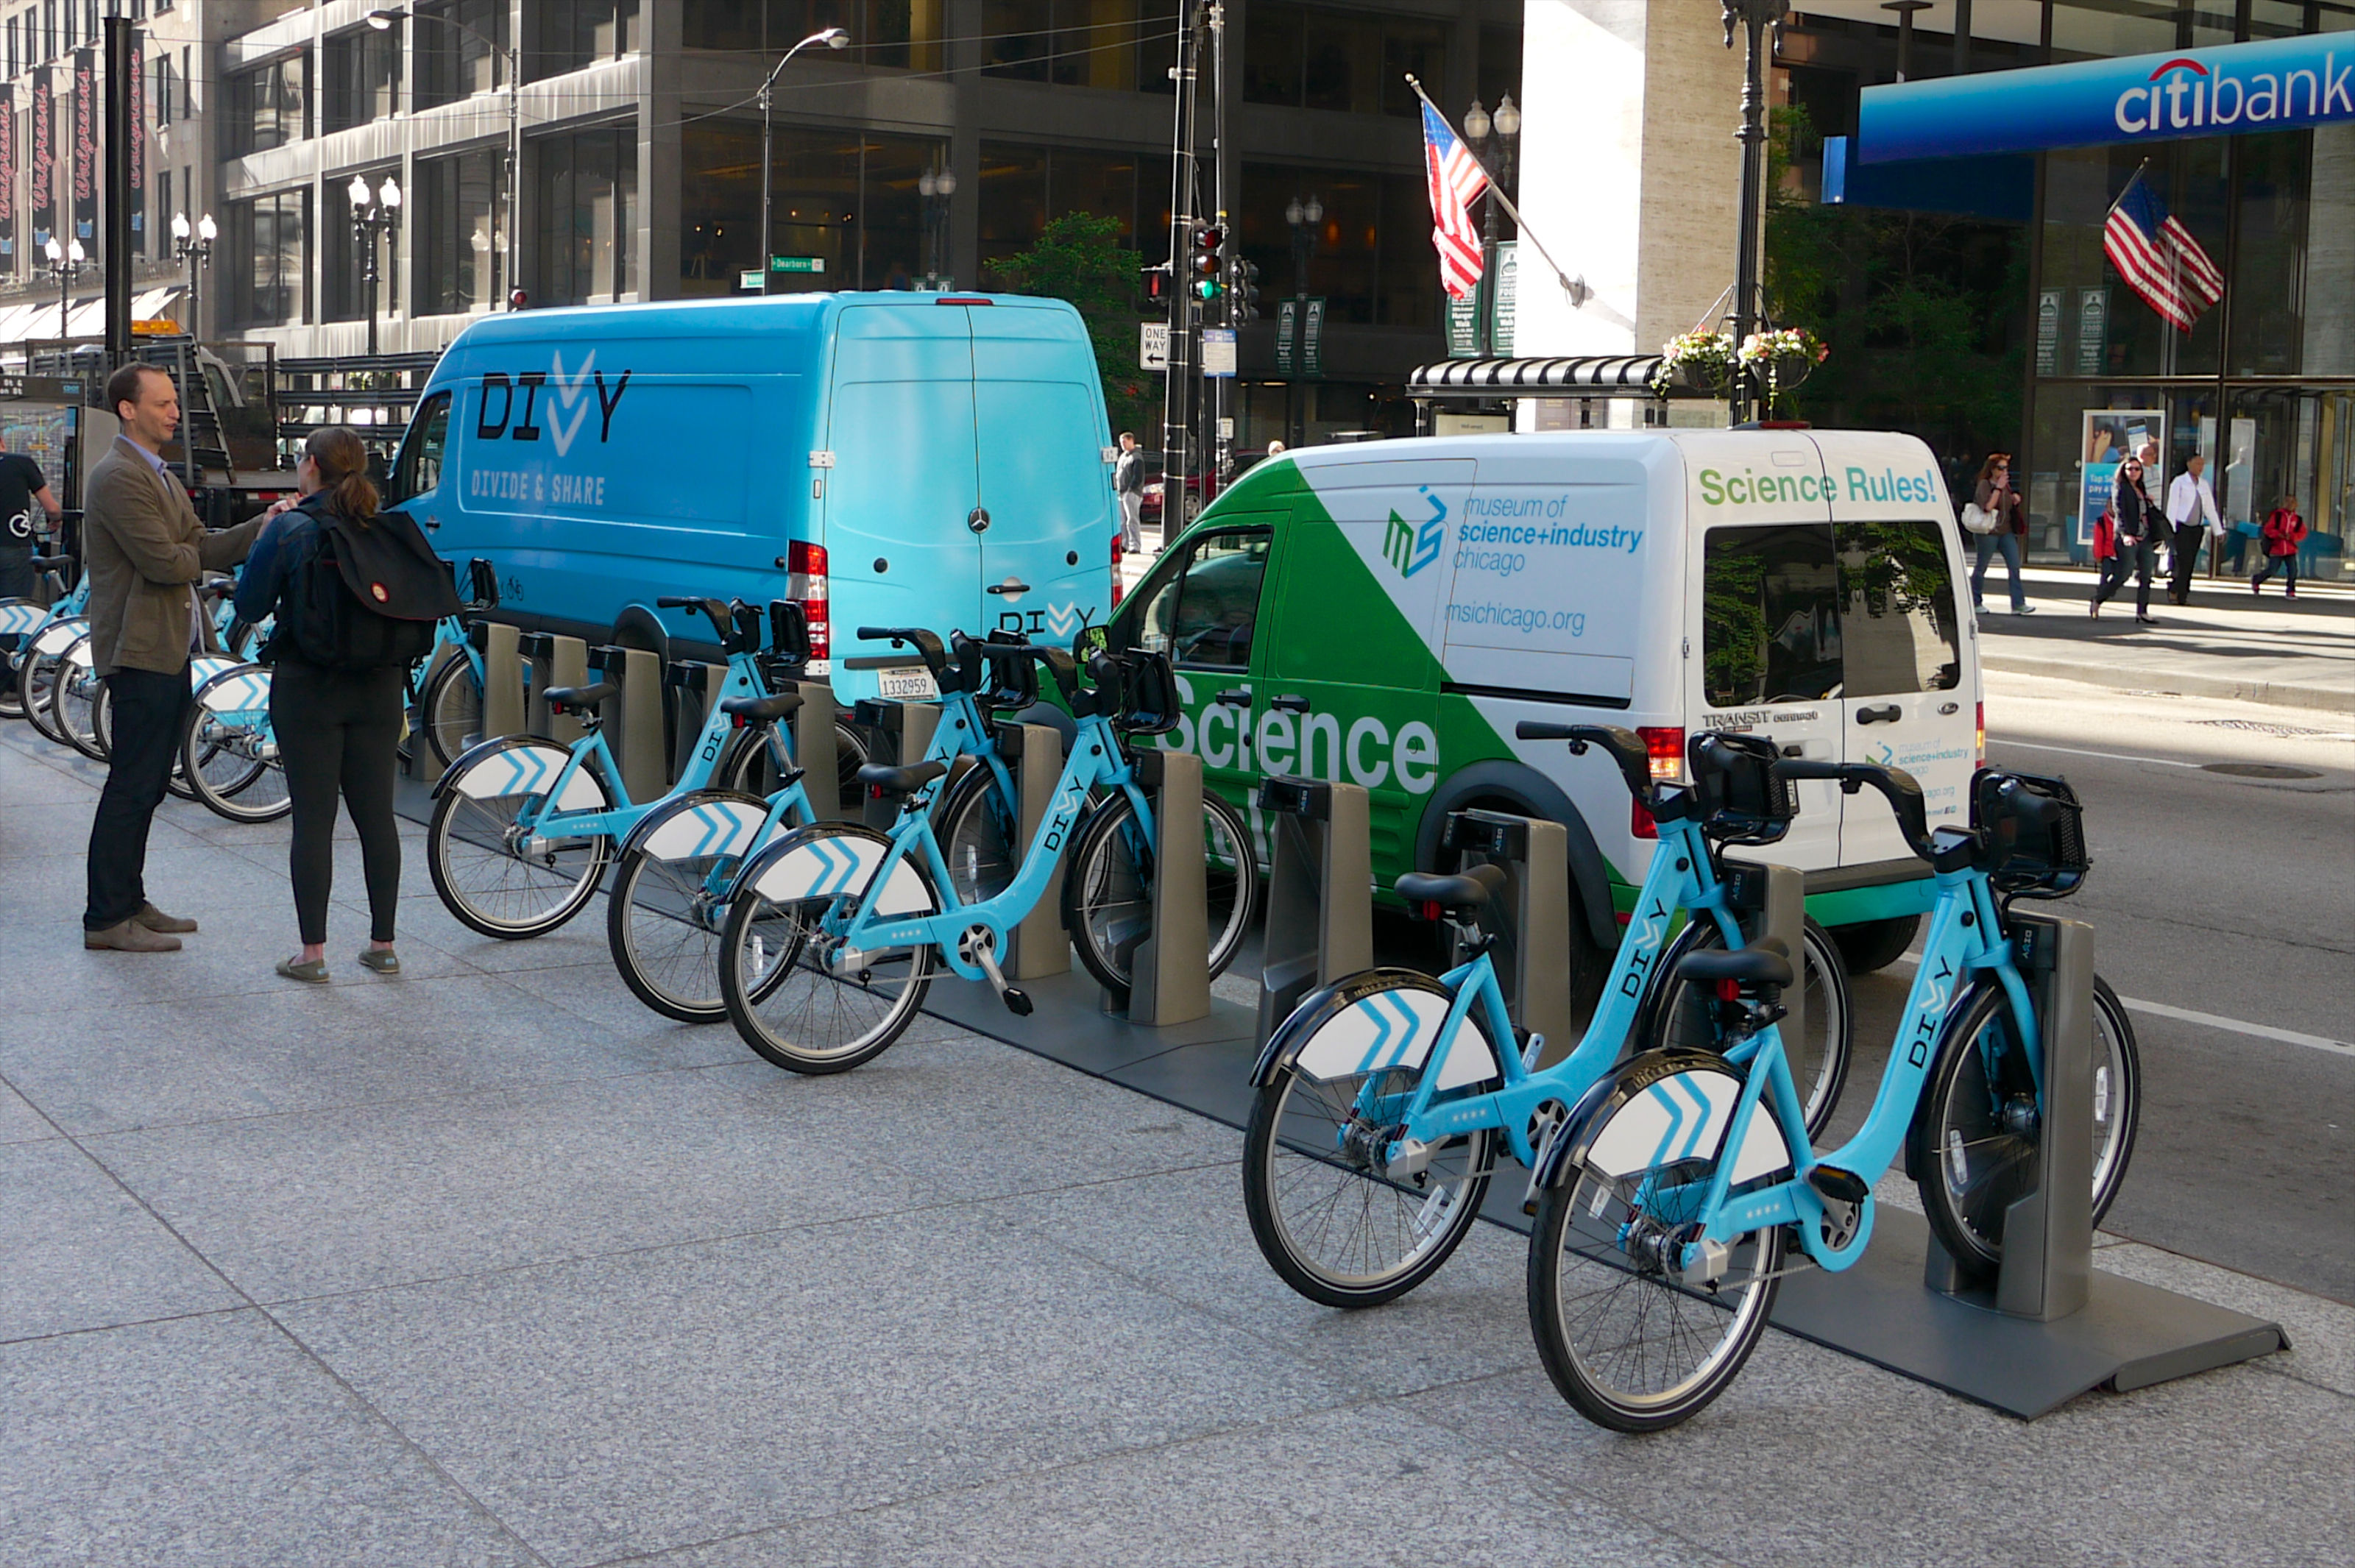 Divvy Bikes In Chicago Dearborn amp Washington Divvy